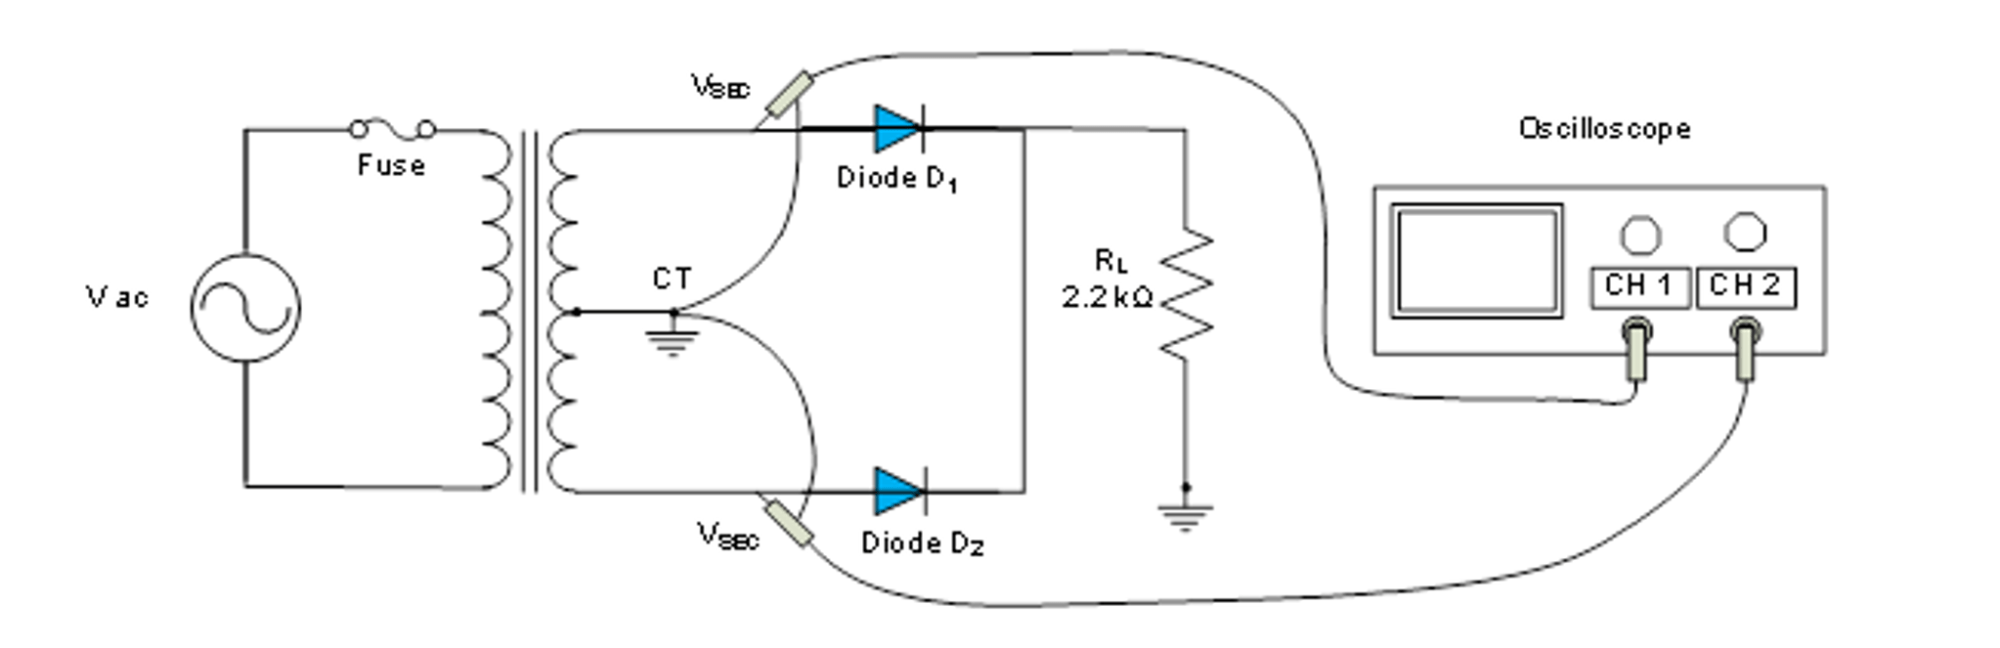 hight resolution of  note the polarity of the capacitor measure the peak to peak ripple voltage vripple of the output measure the ripple frequency